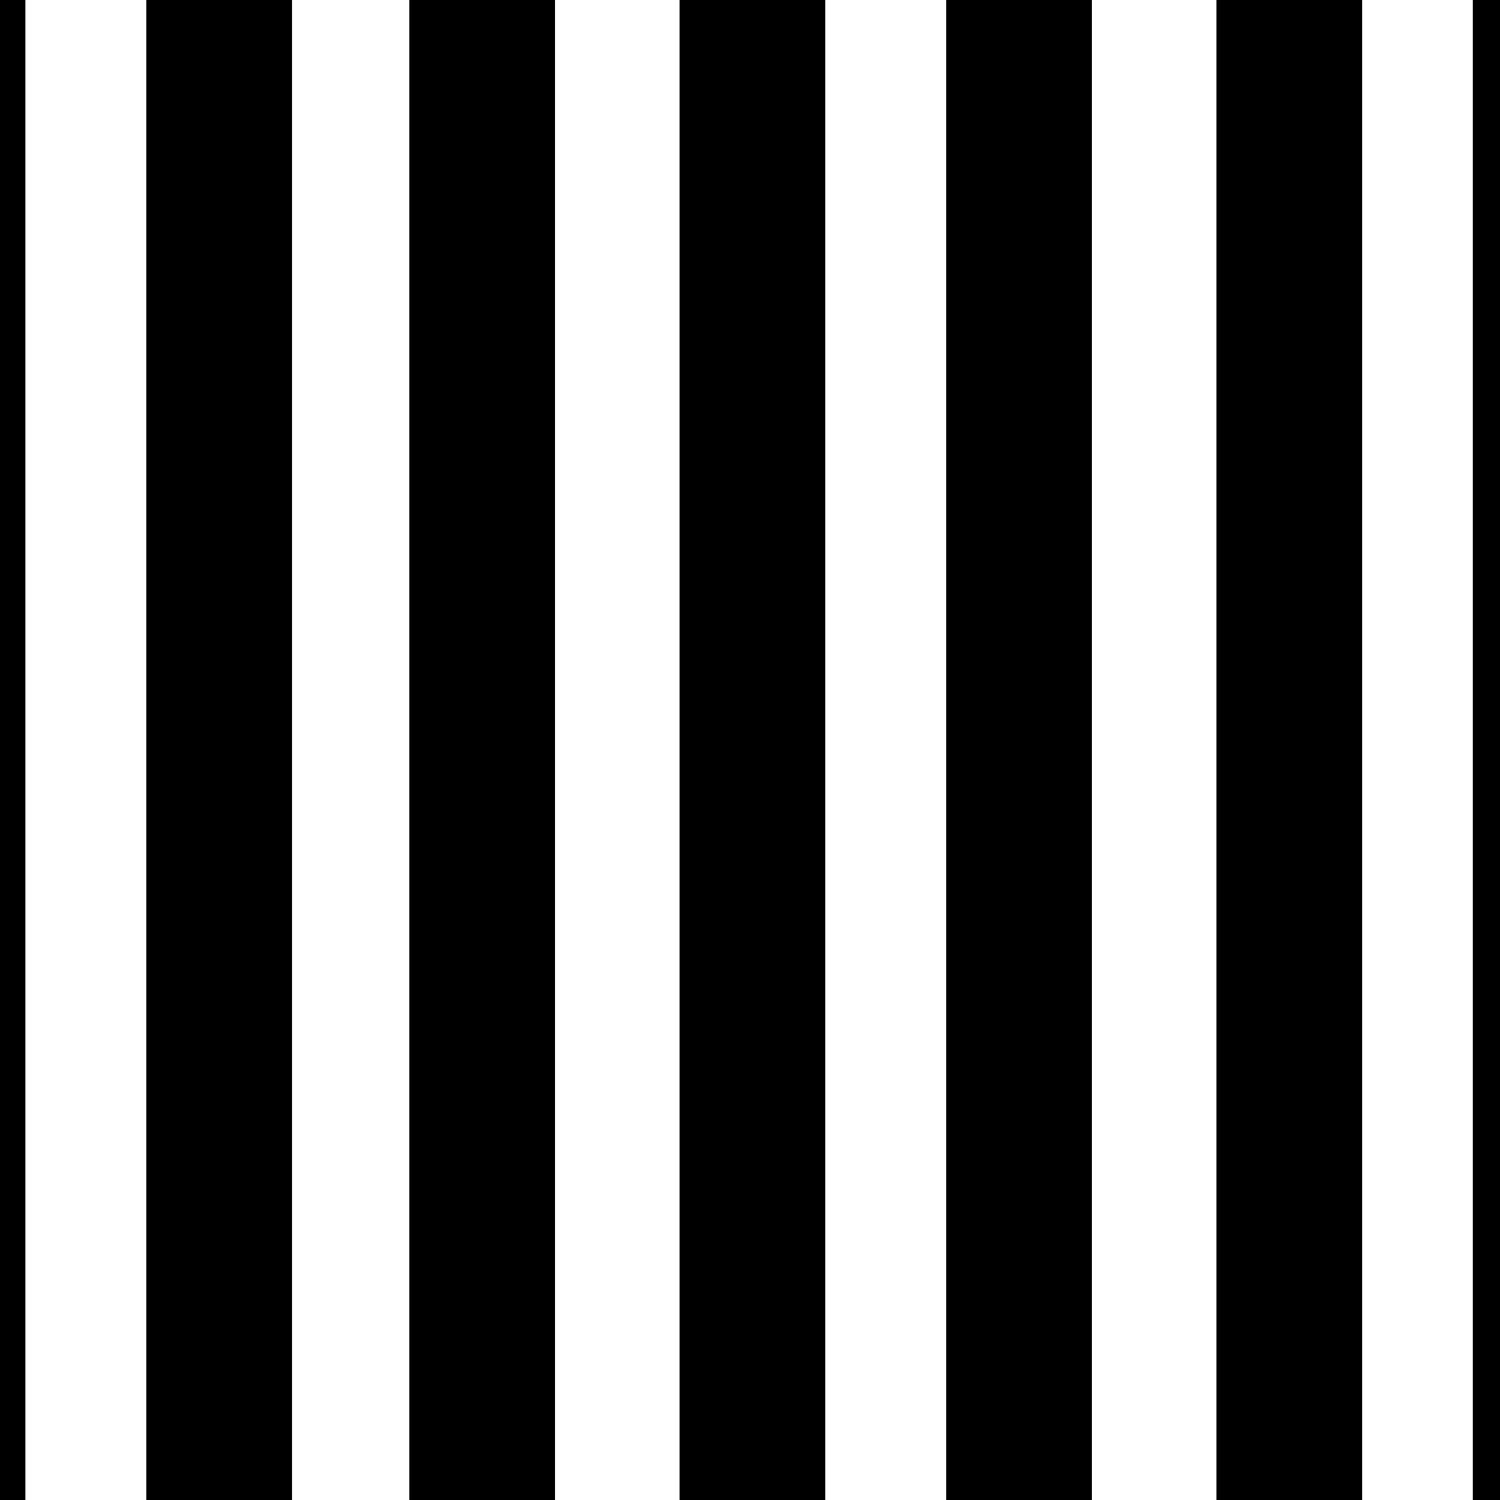 Modern classic black white striped wallpaper unpasted roll 20 8 inch x 32 8 feet 1 roll pack amazon com